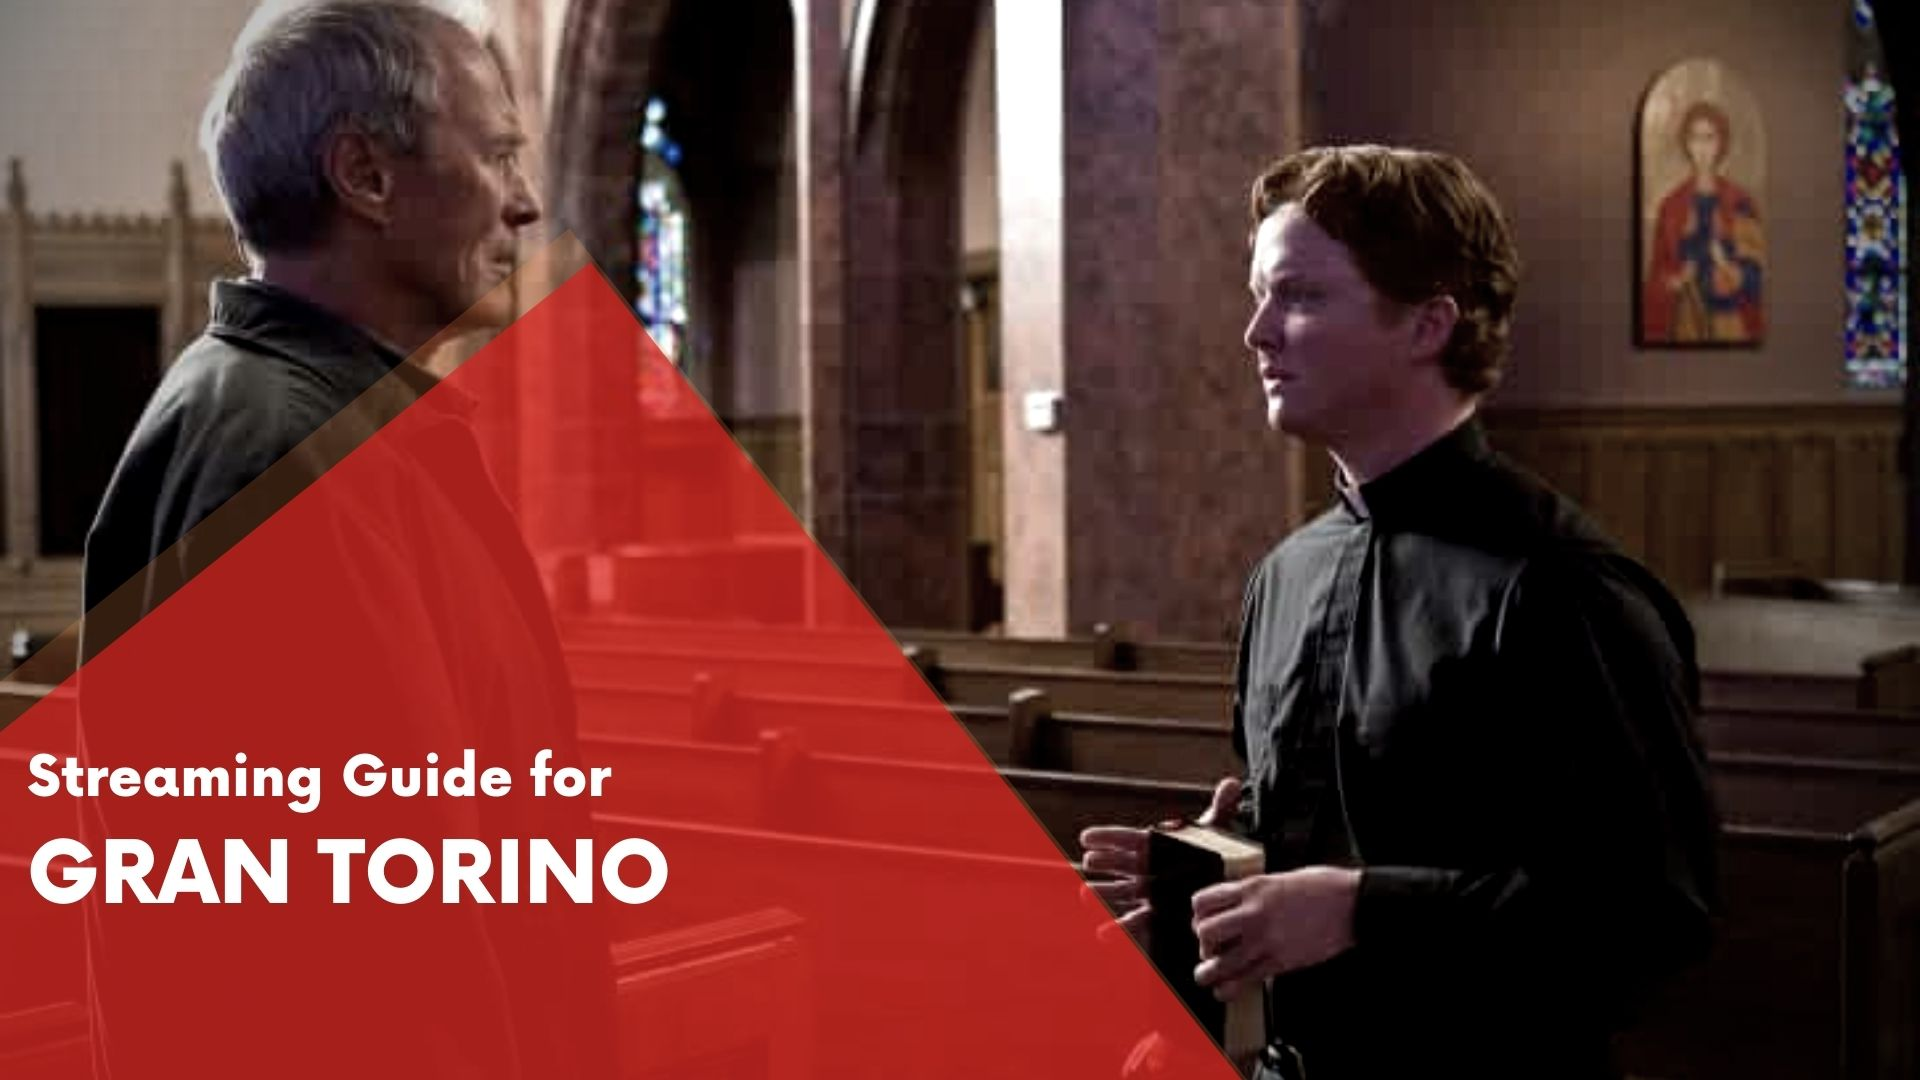 Answering if Gran Torino is available on Hulu